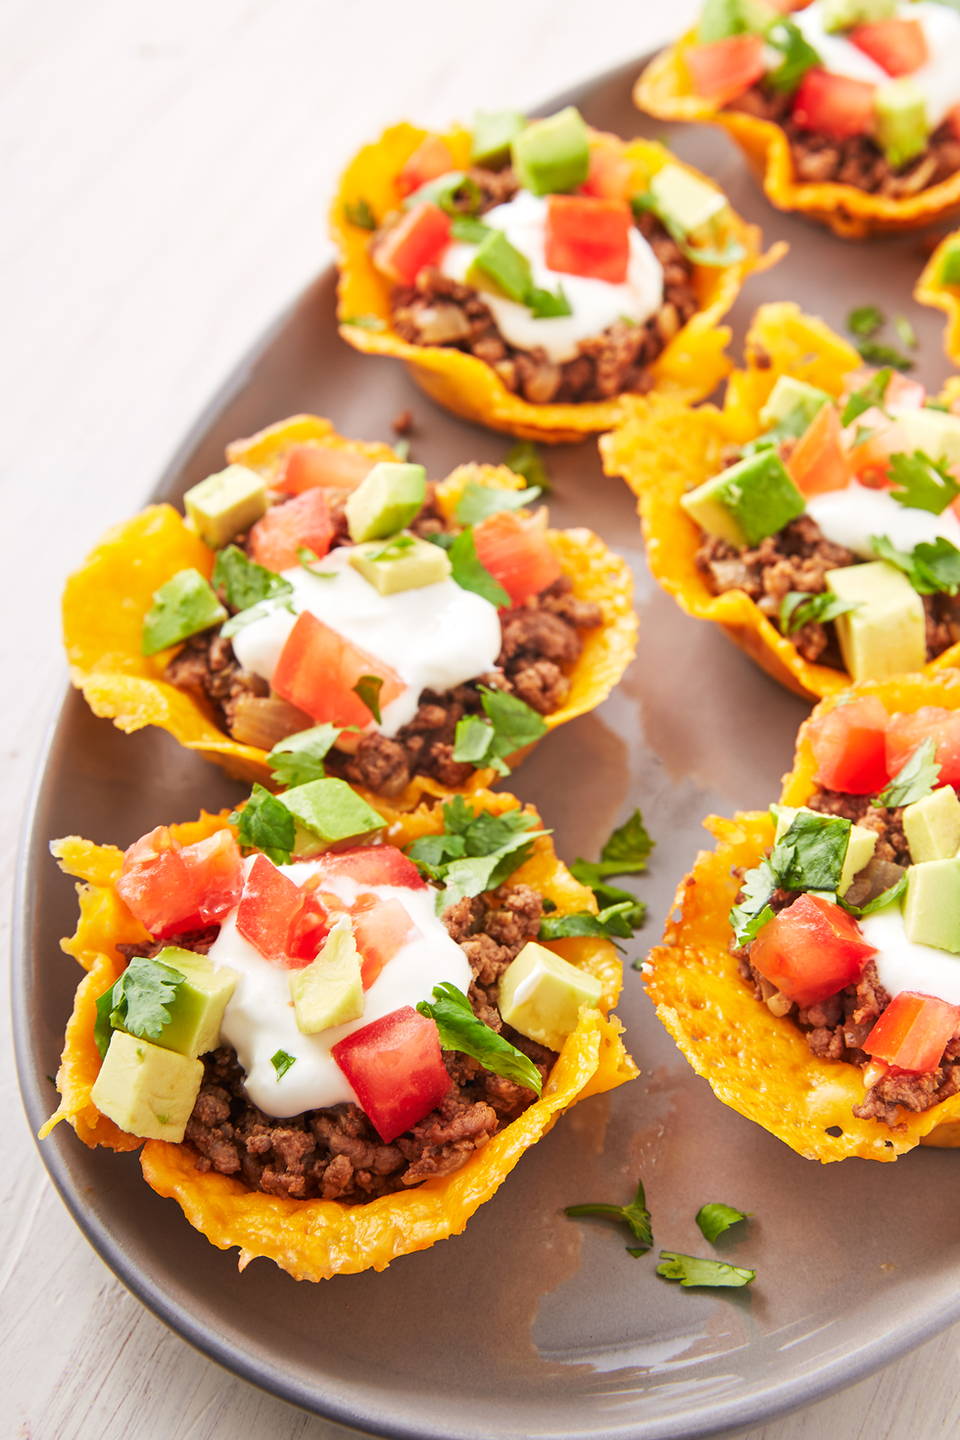 """<p>Just like you can make chips out of cheese, taco shells can also be fashioned out of fried cheese. Let your cheese cool in the muffin shell before stuffing them with keto-friendly ingredients.</p><p><a href=""""https://www.delish.com/cooking/recipe-ideas/a19637783/keto-taco-cups-recipe/"""" rel=""""nofollow noopener"""" target=""""_blank"""" data-ylk=""""slk:Get the recipe from Delish »"""" class=""""link rapid-noclick-resp""""><em>Get the recipe from Delish</em> »</a></p>"""